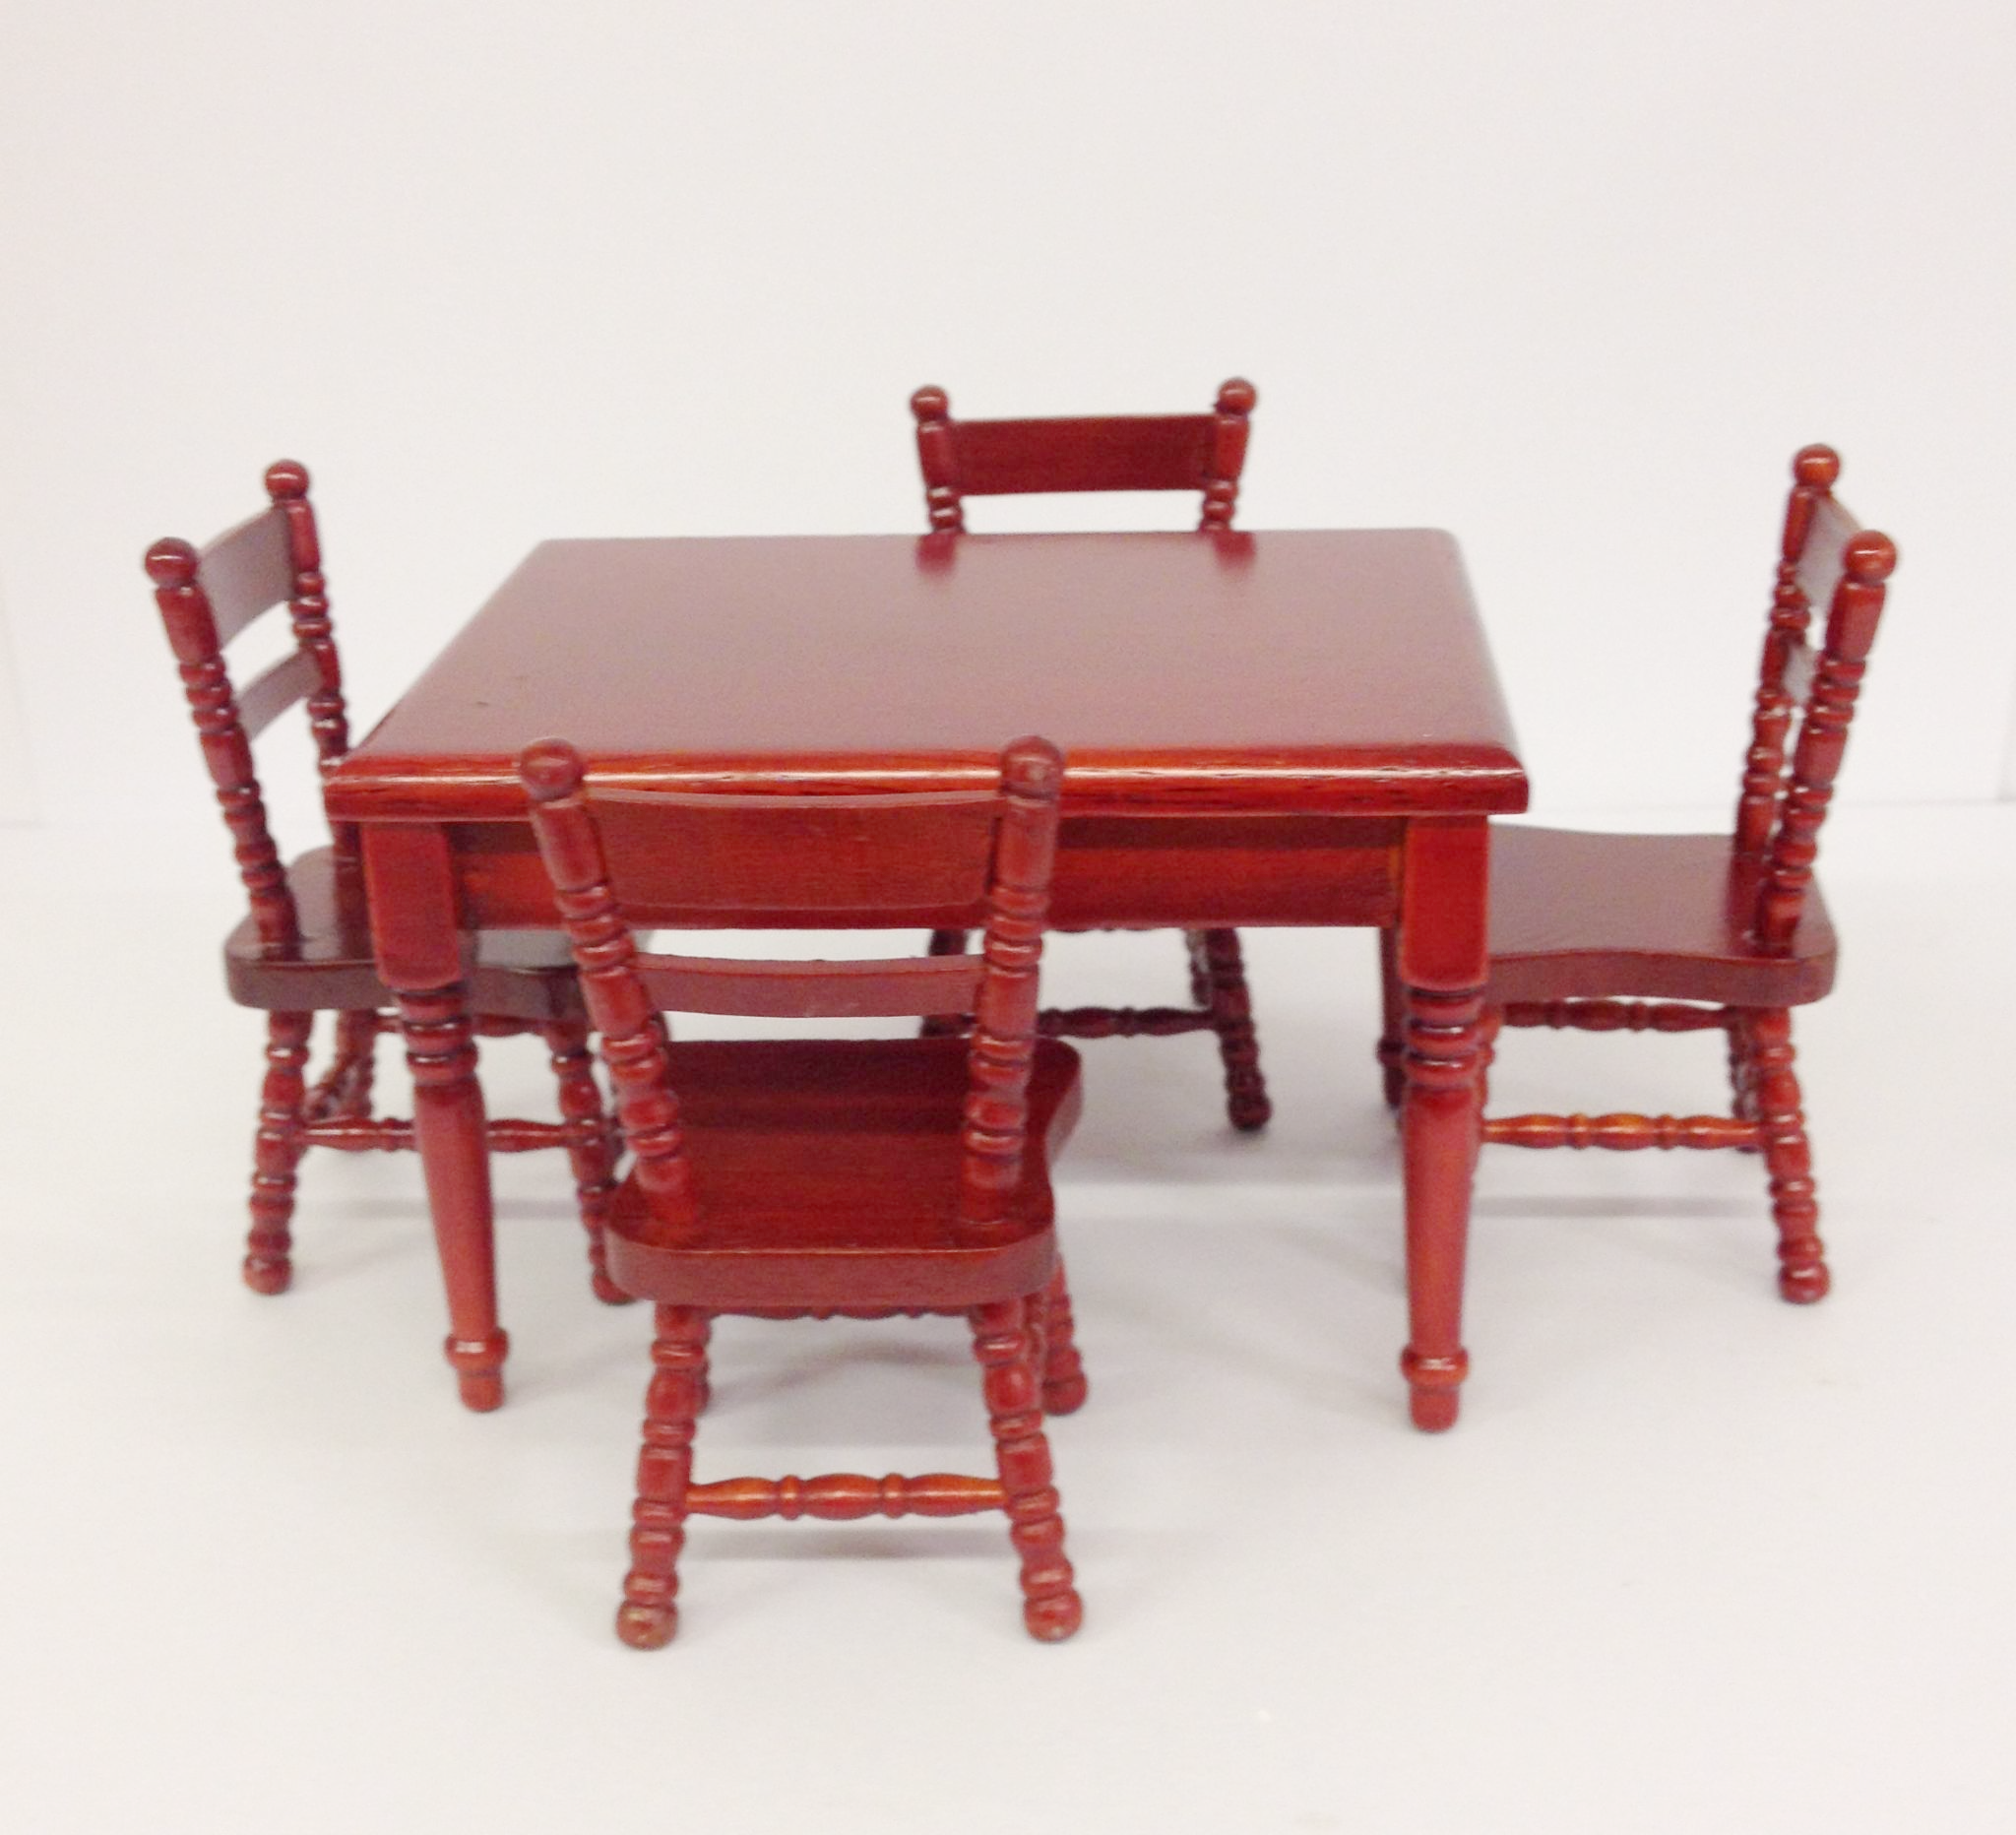 Wooden Dolls House Furniture 8 Piece Kitchen Dining Room Set 1:12 Scale